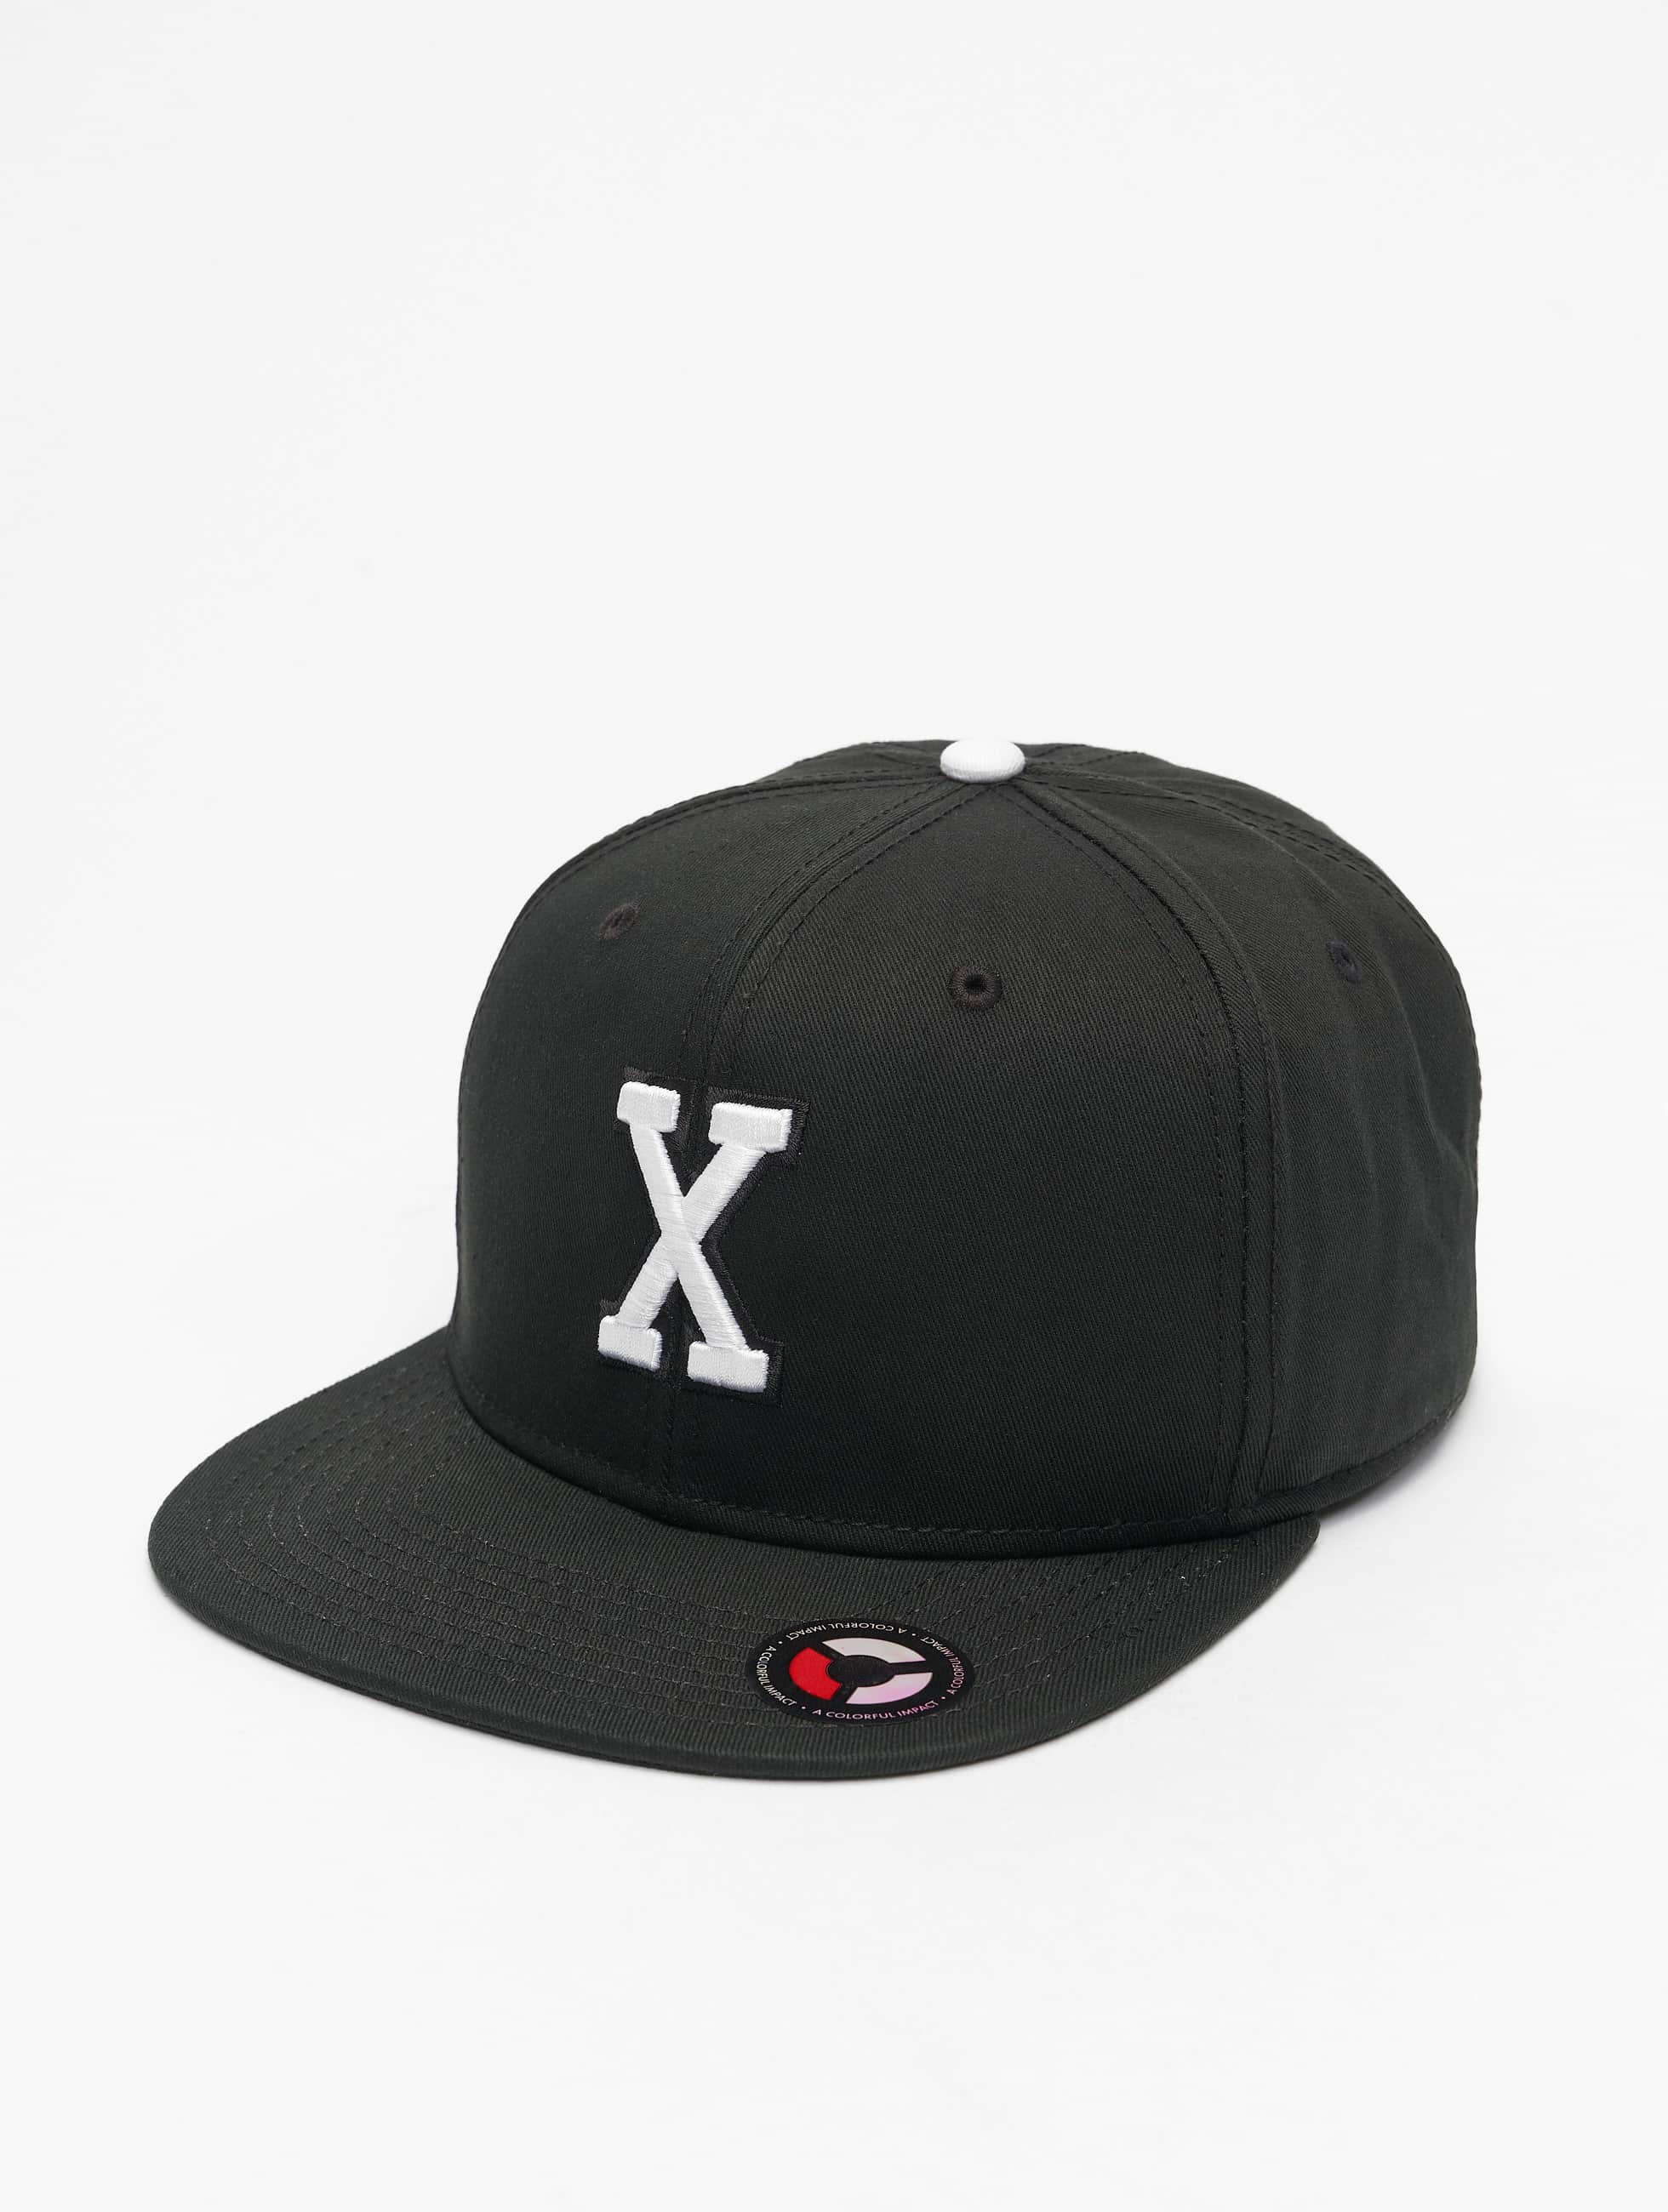 MSTRDS Snapback Caps X Letter musta